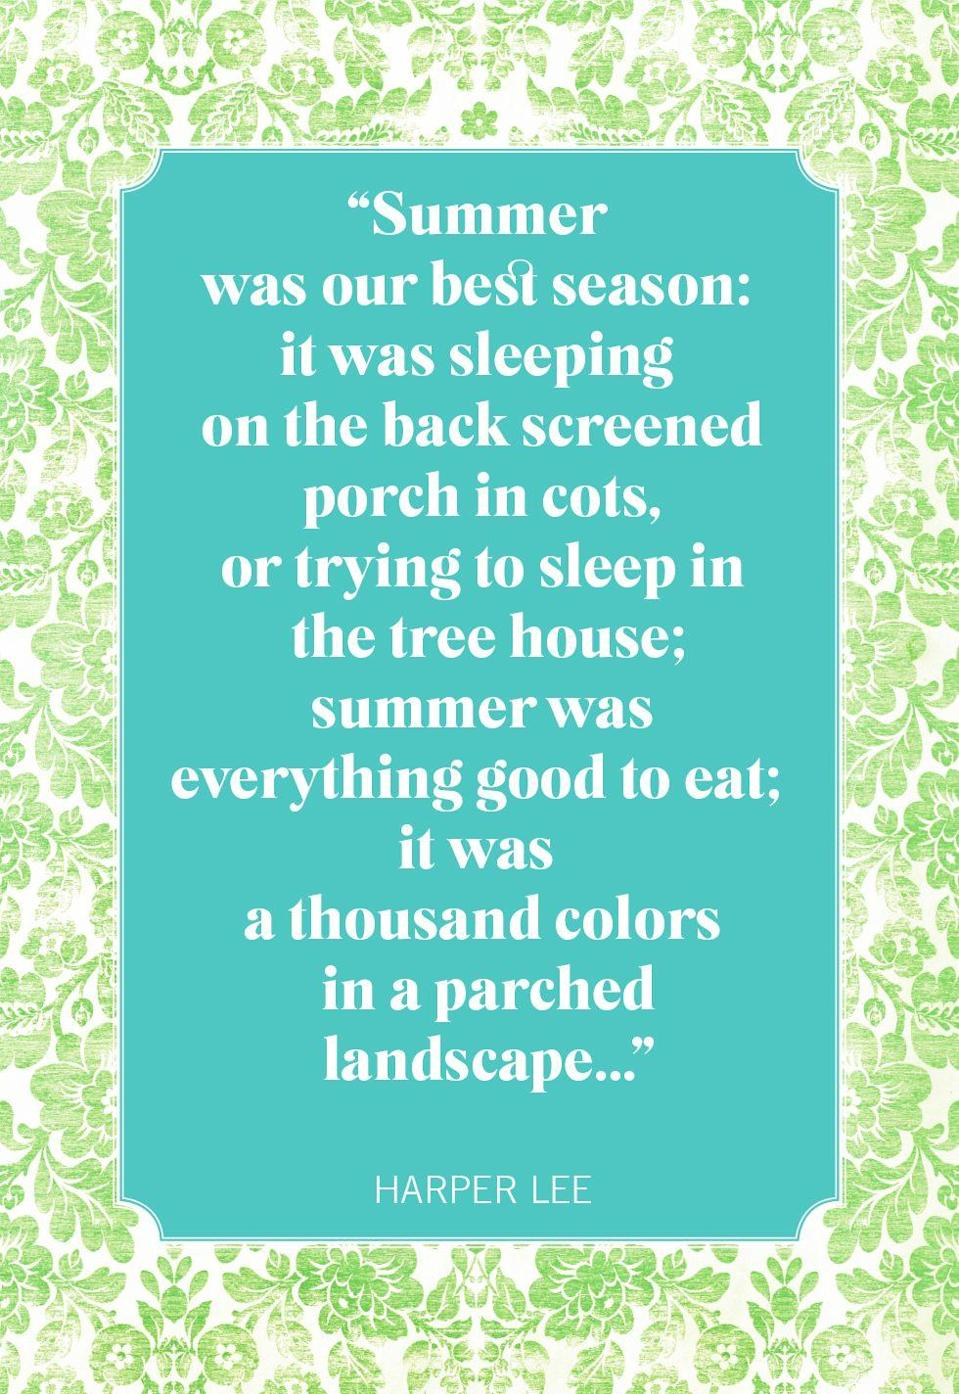 """<p>""""Summer was our best season: it was sleeping on the back screened porch in cots, or trying to sleep in the tree house; summer was everything good to eat; it was a thousand colors in a parched landscape...""""</p>"""